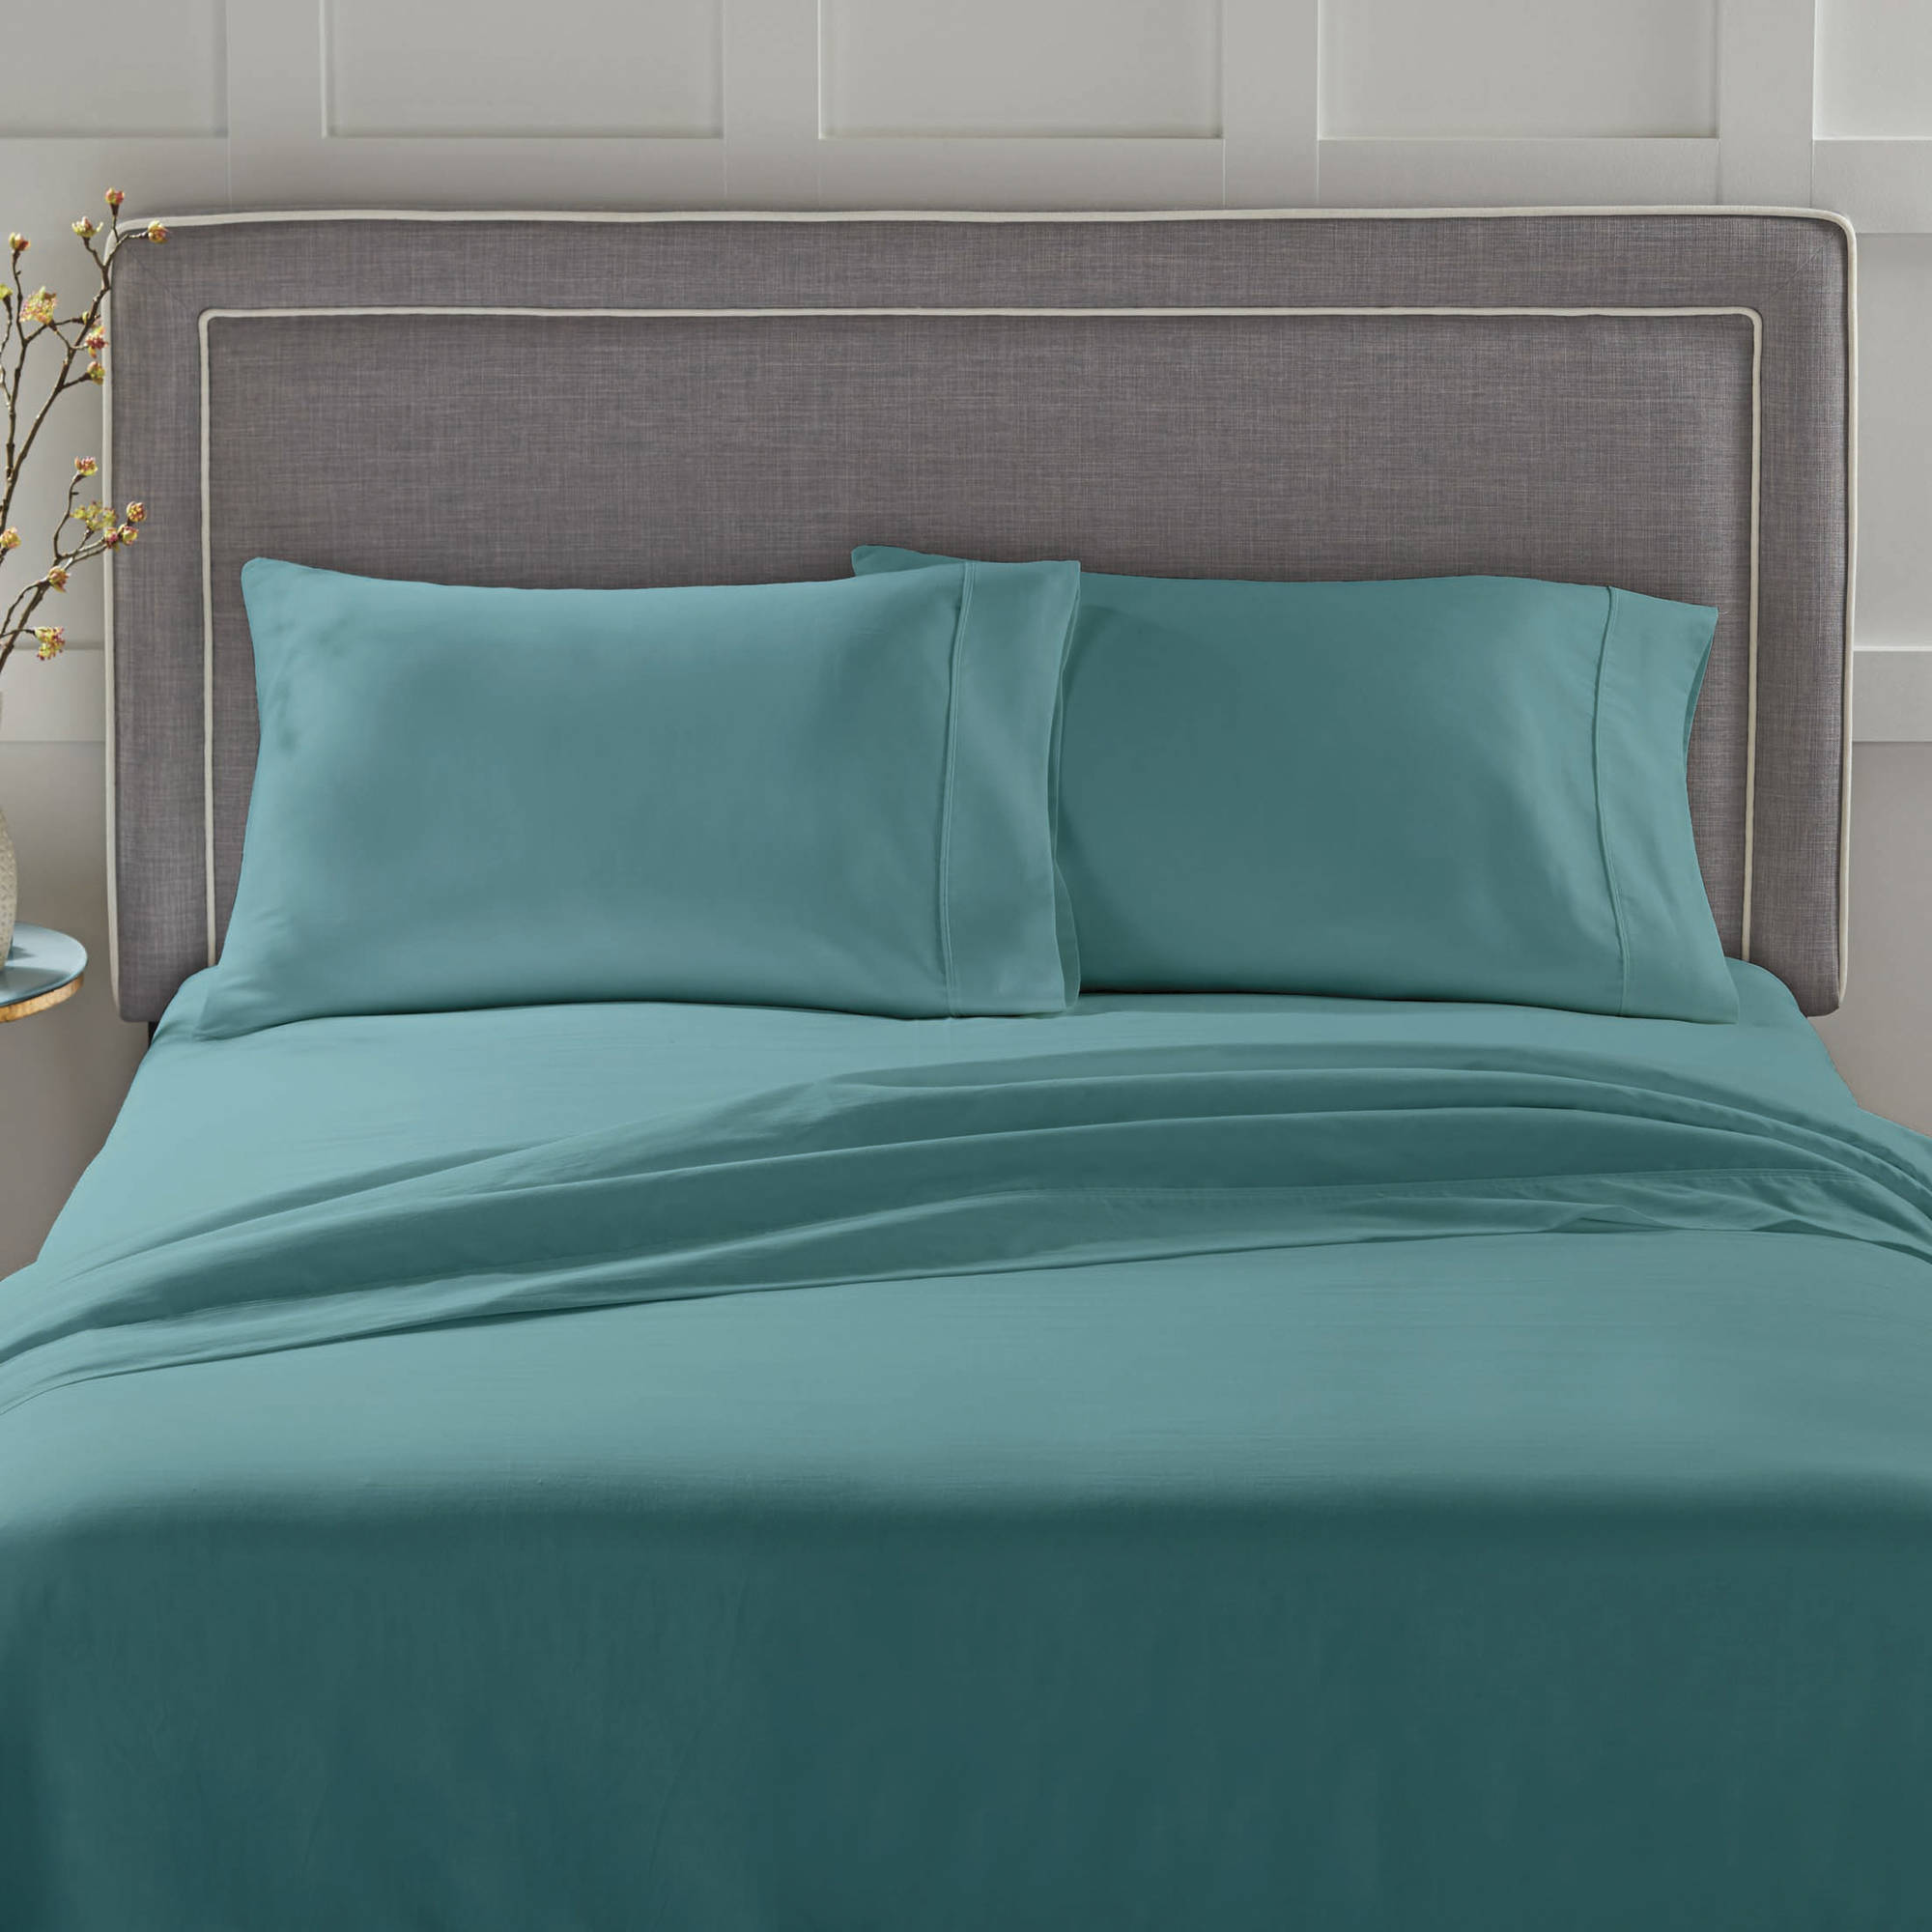 Better Homes and Gardens 300 Thread Count Sheet Collection - Walmart.com